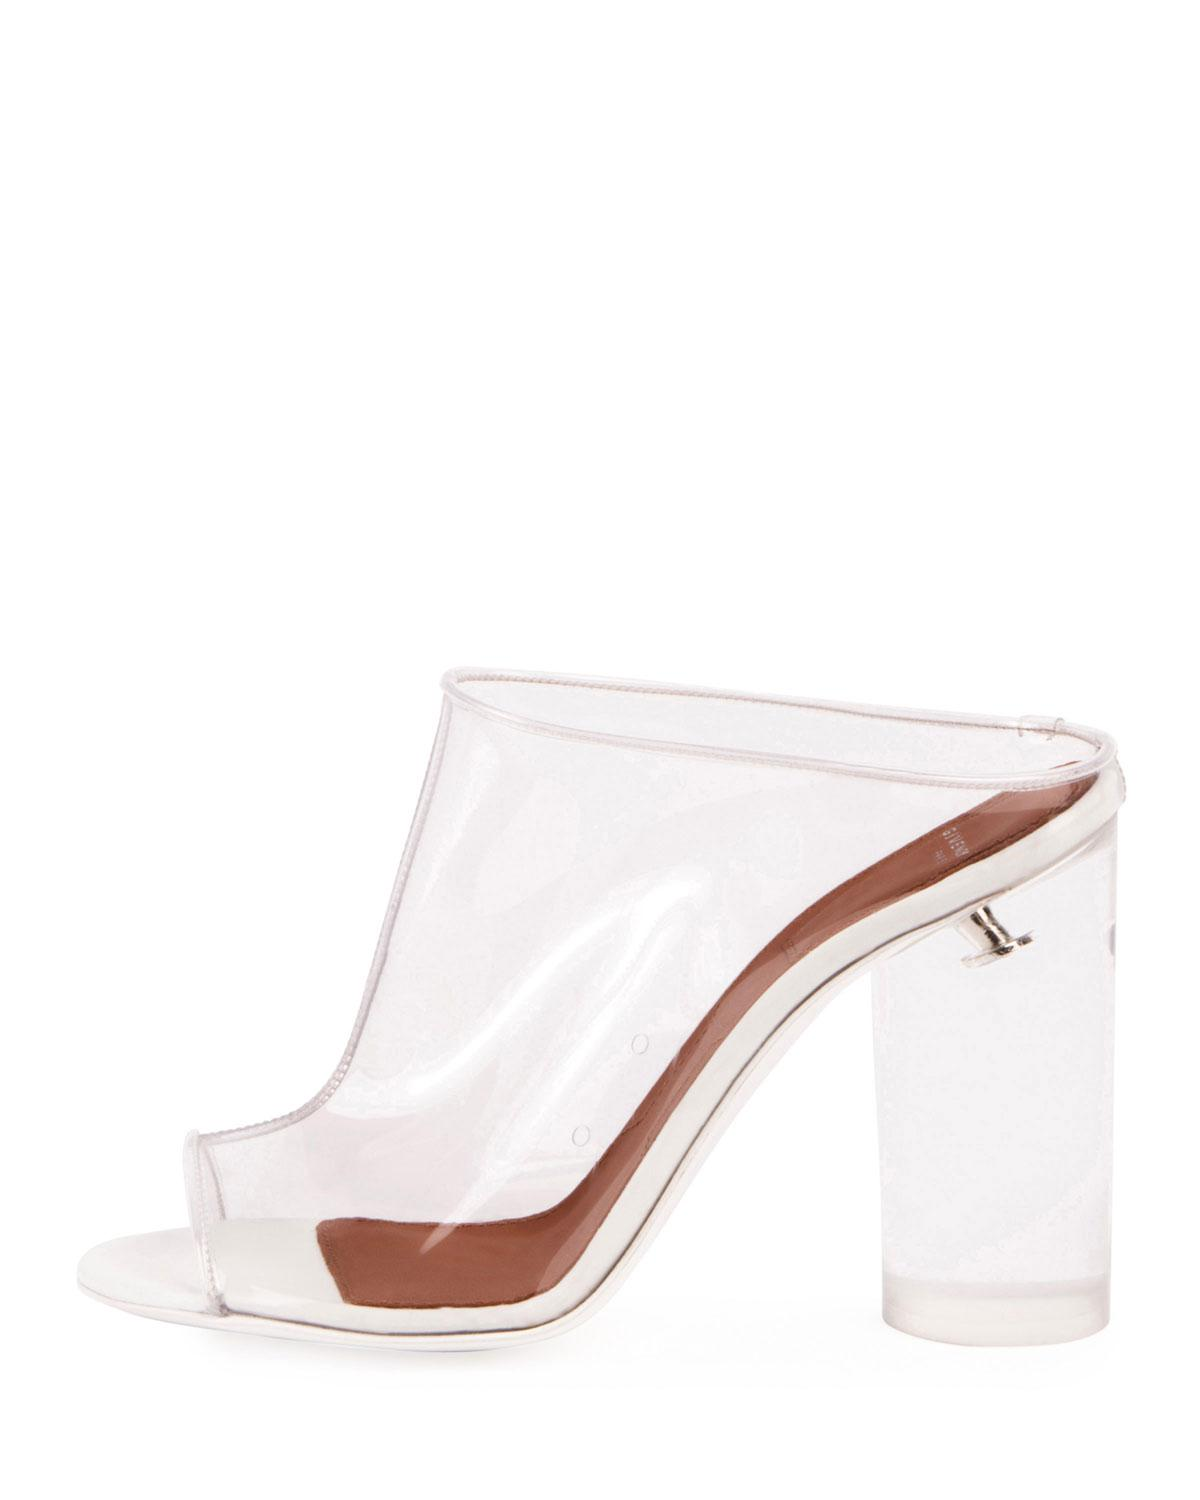 8bf78378e41 Lyst - Givenchy Clear Pvc Mule Sandal in White